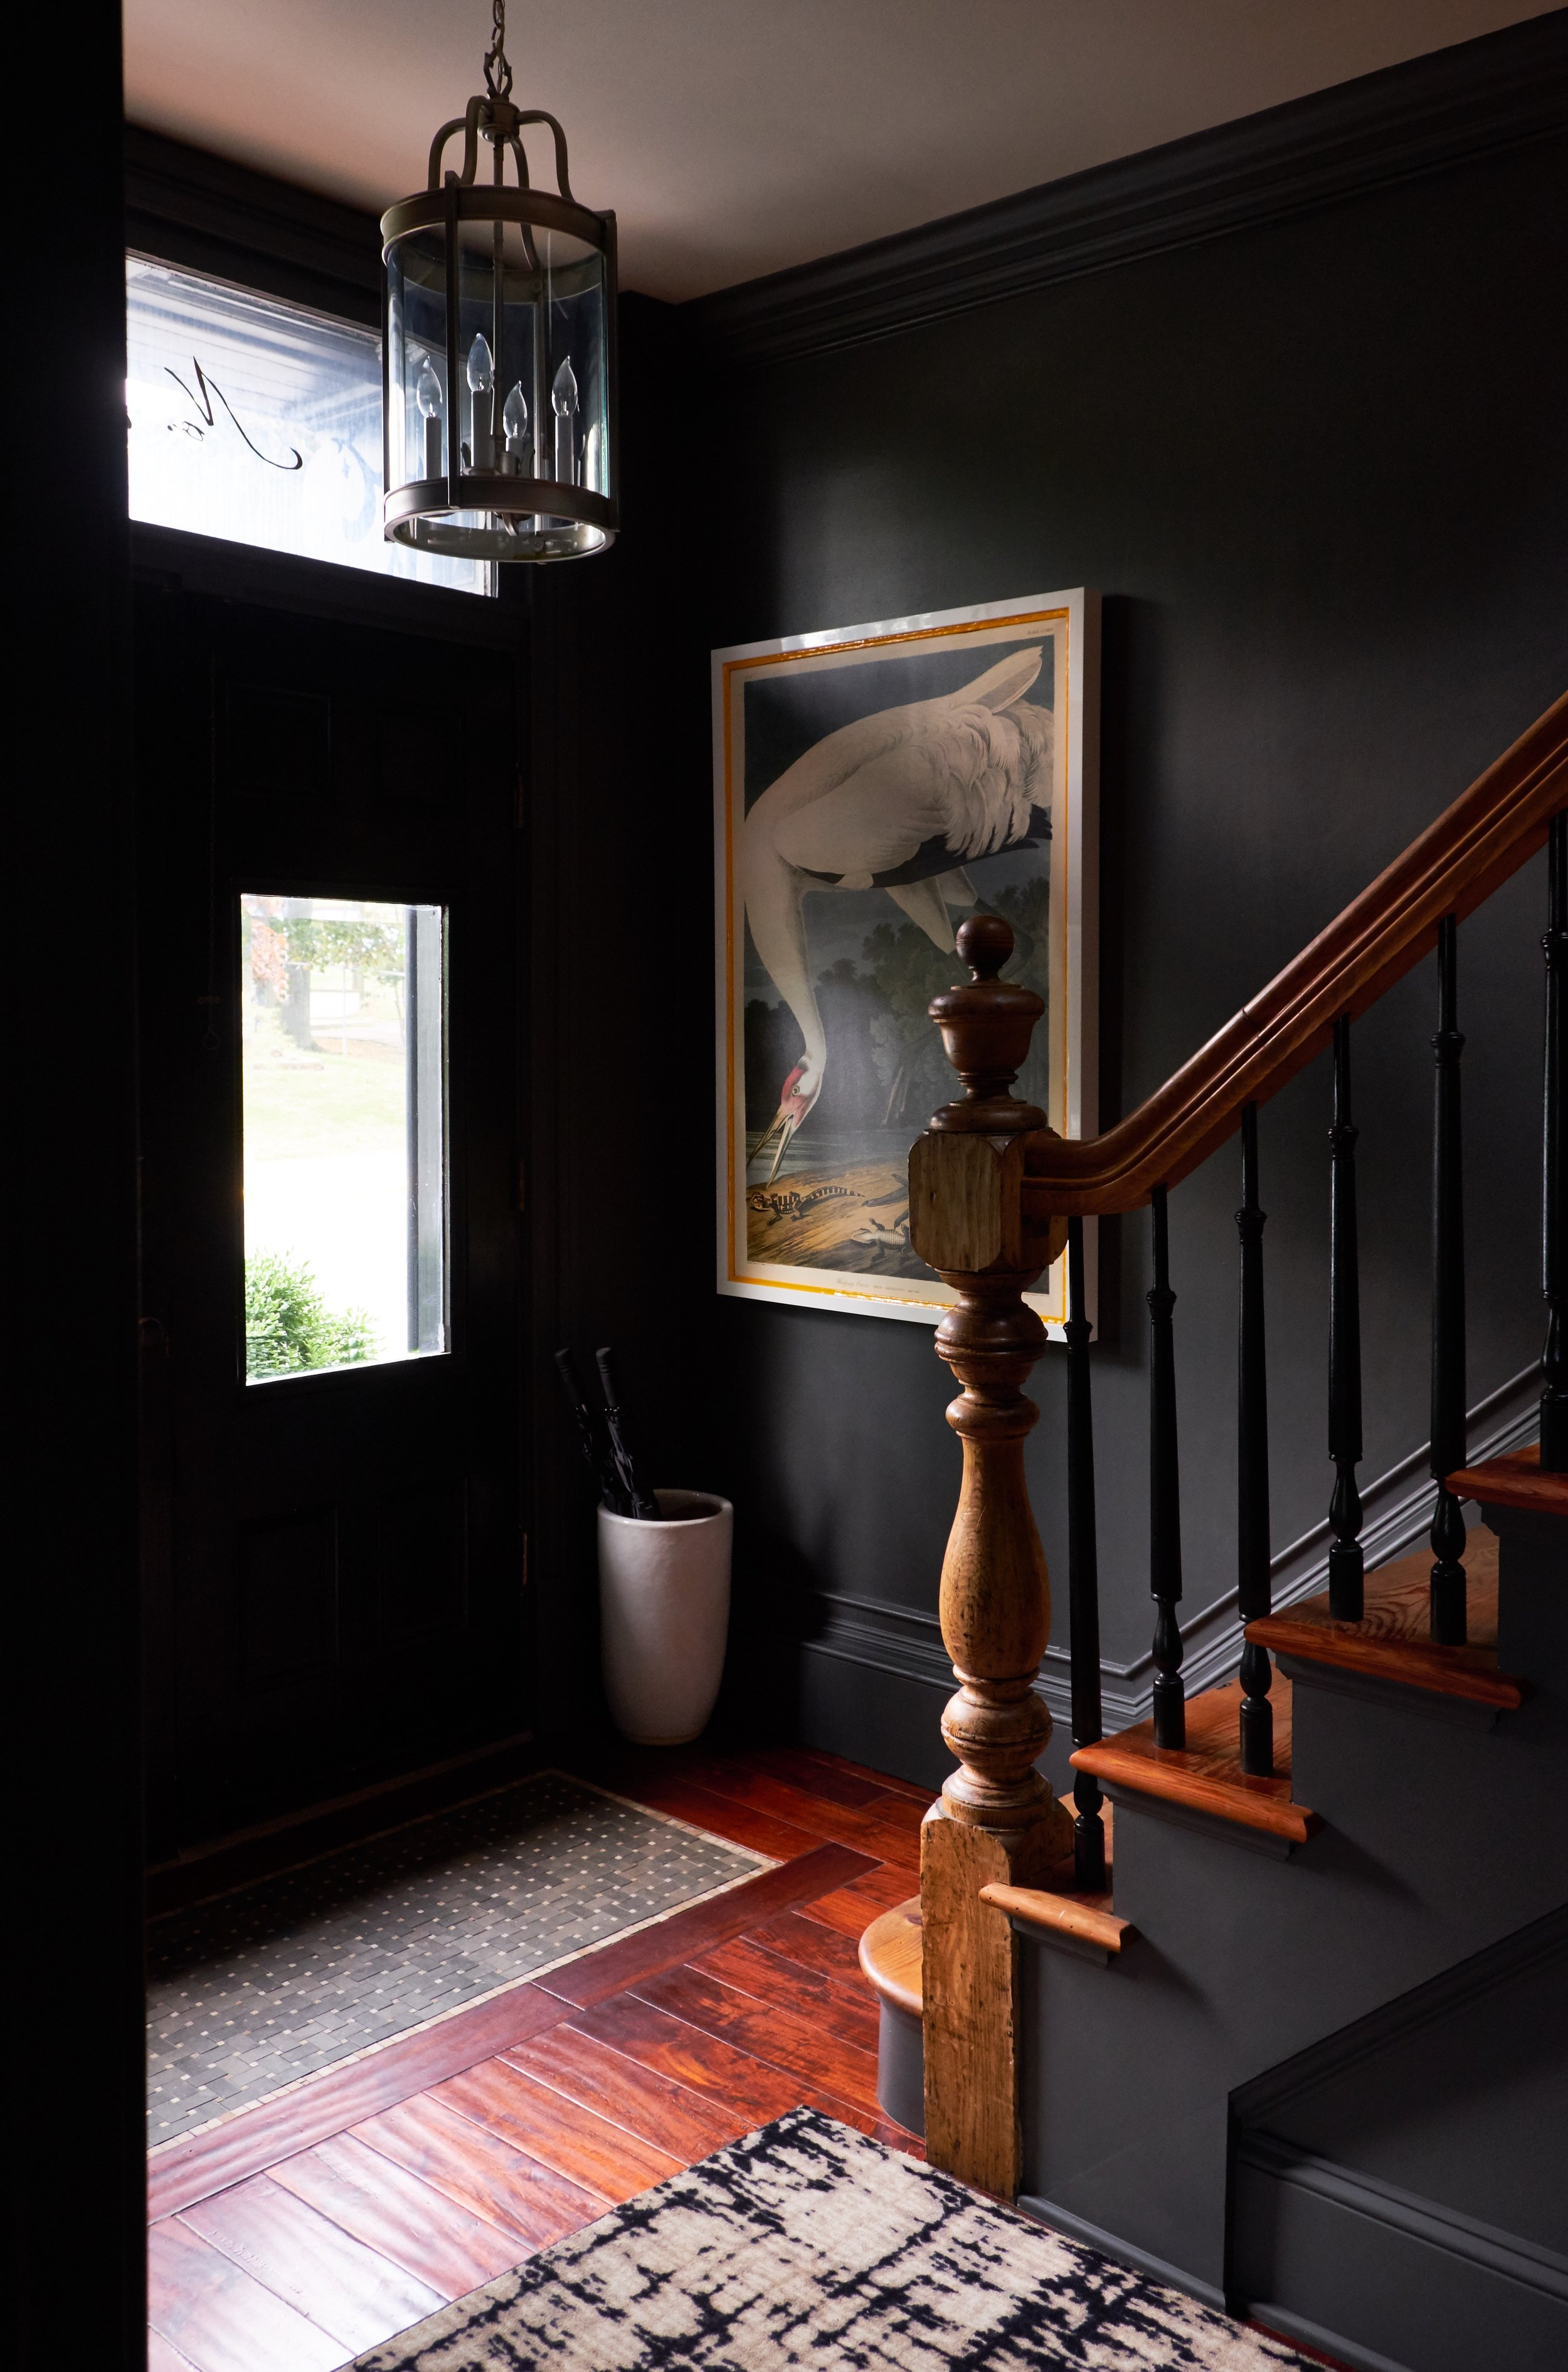 The Merchant House entryway and stairwell